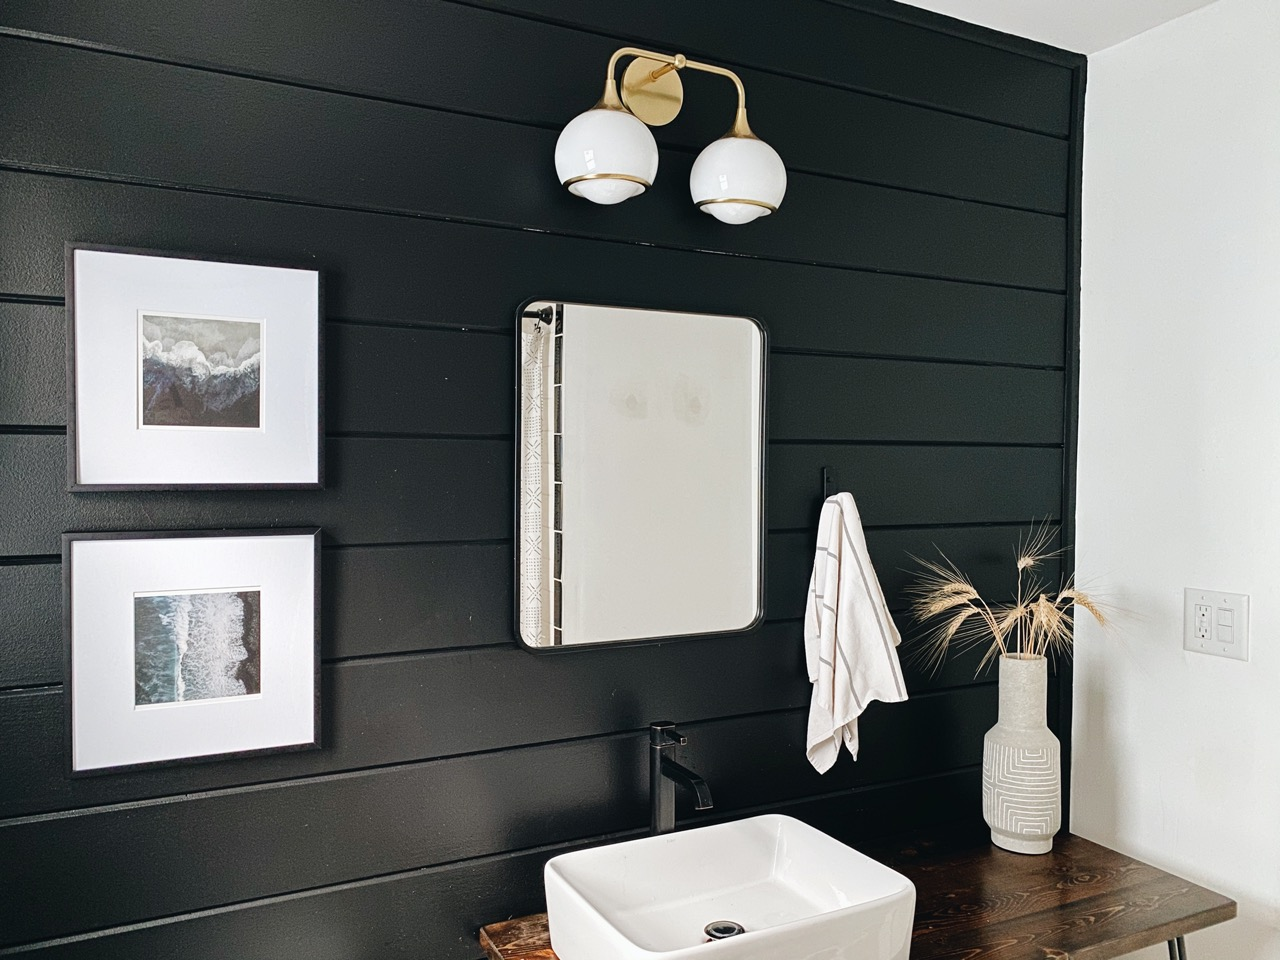 frames in bathroom